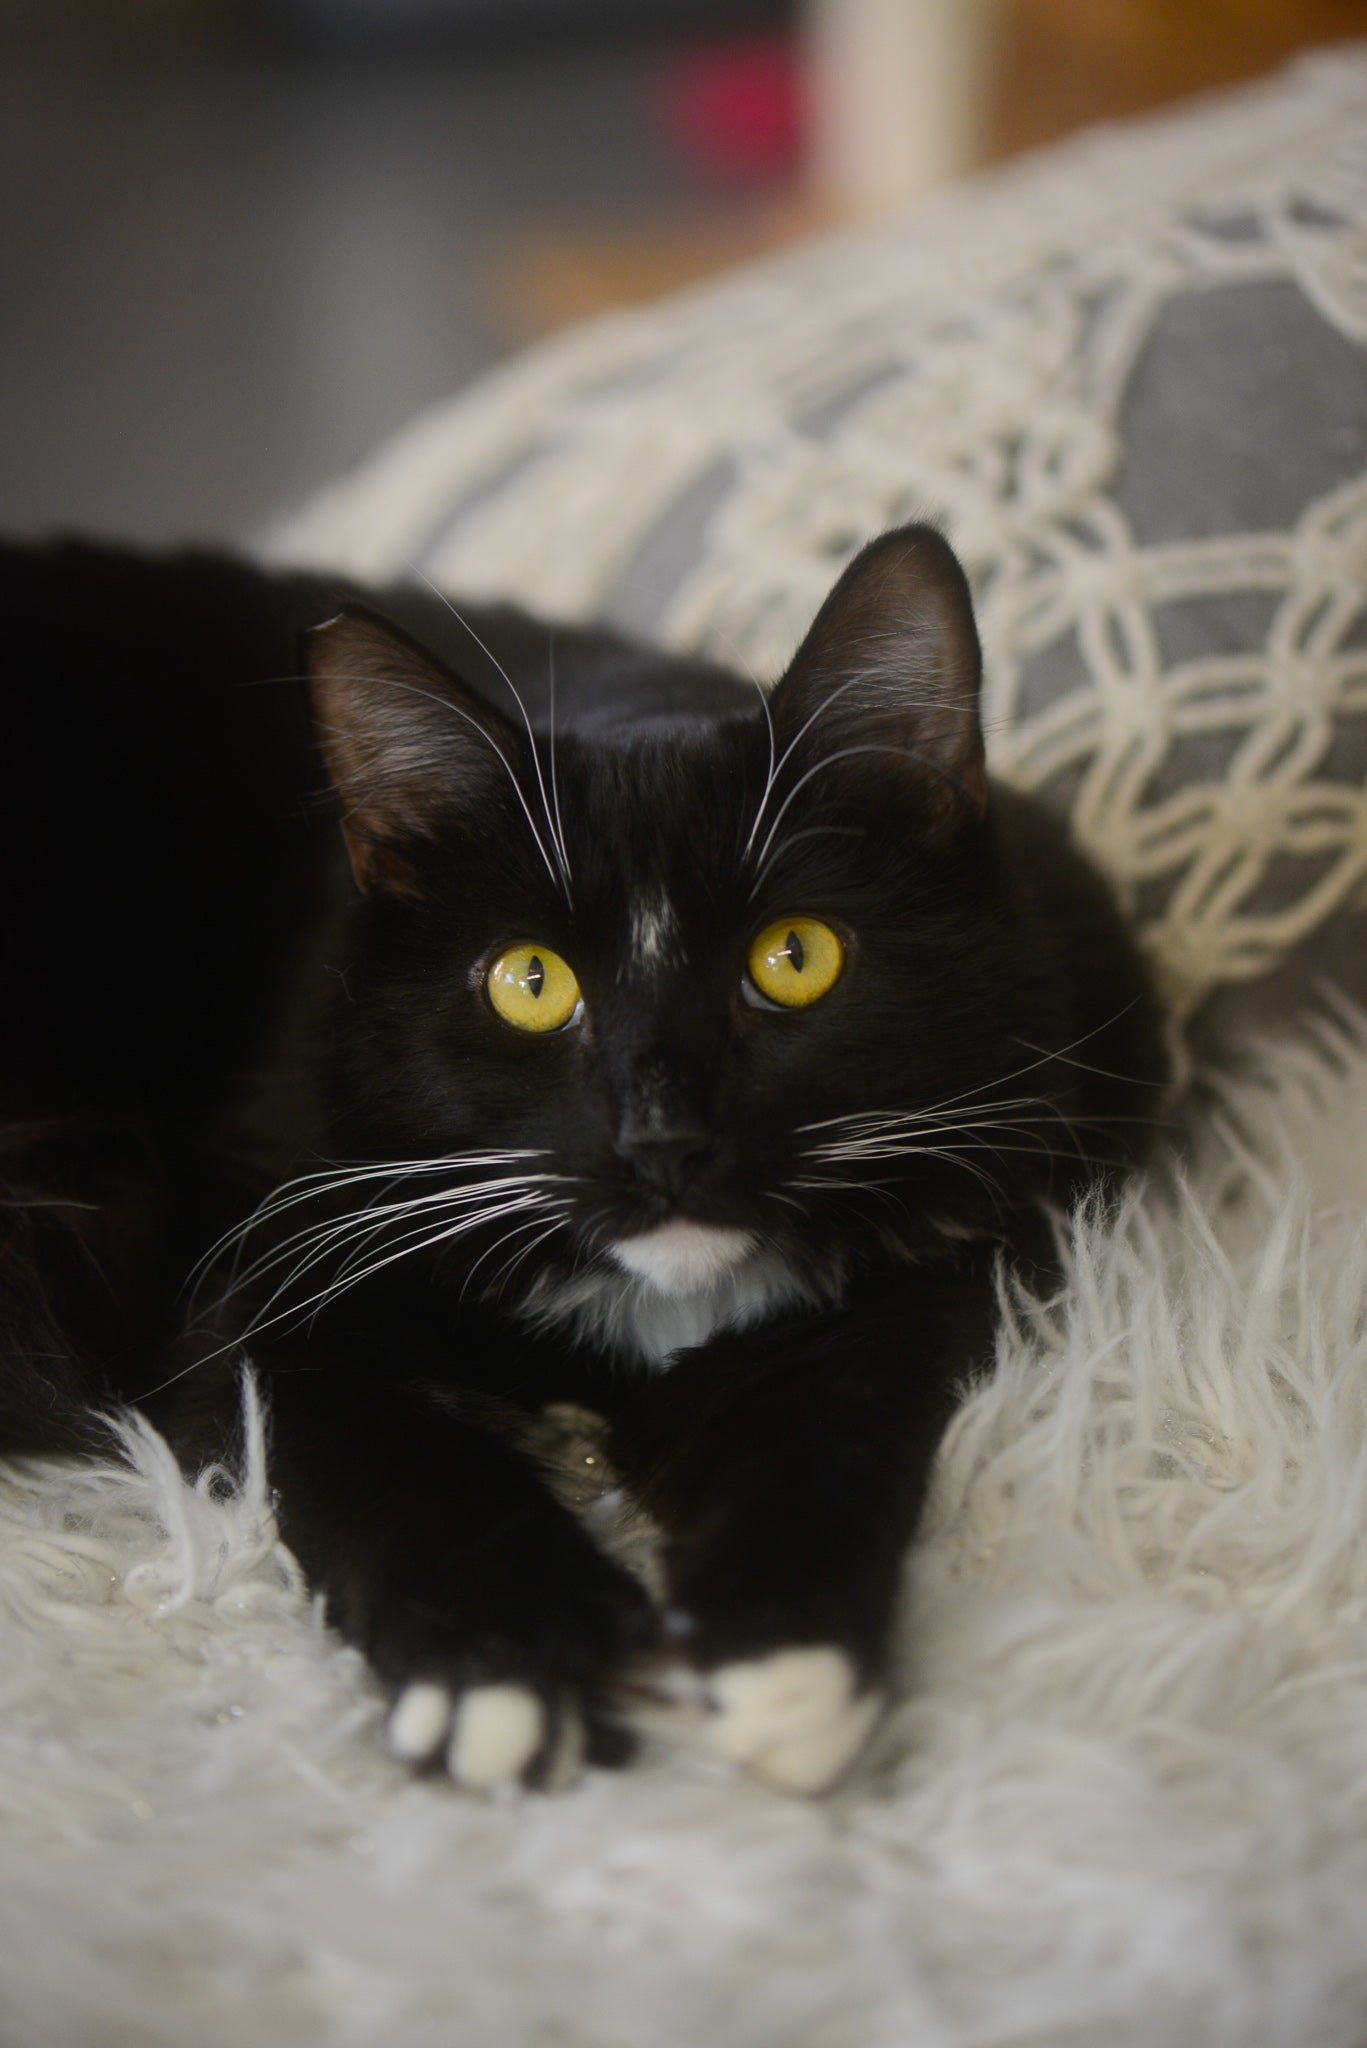 Fluffy adoptable tuxedo cat with green eyes